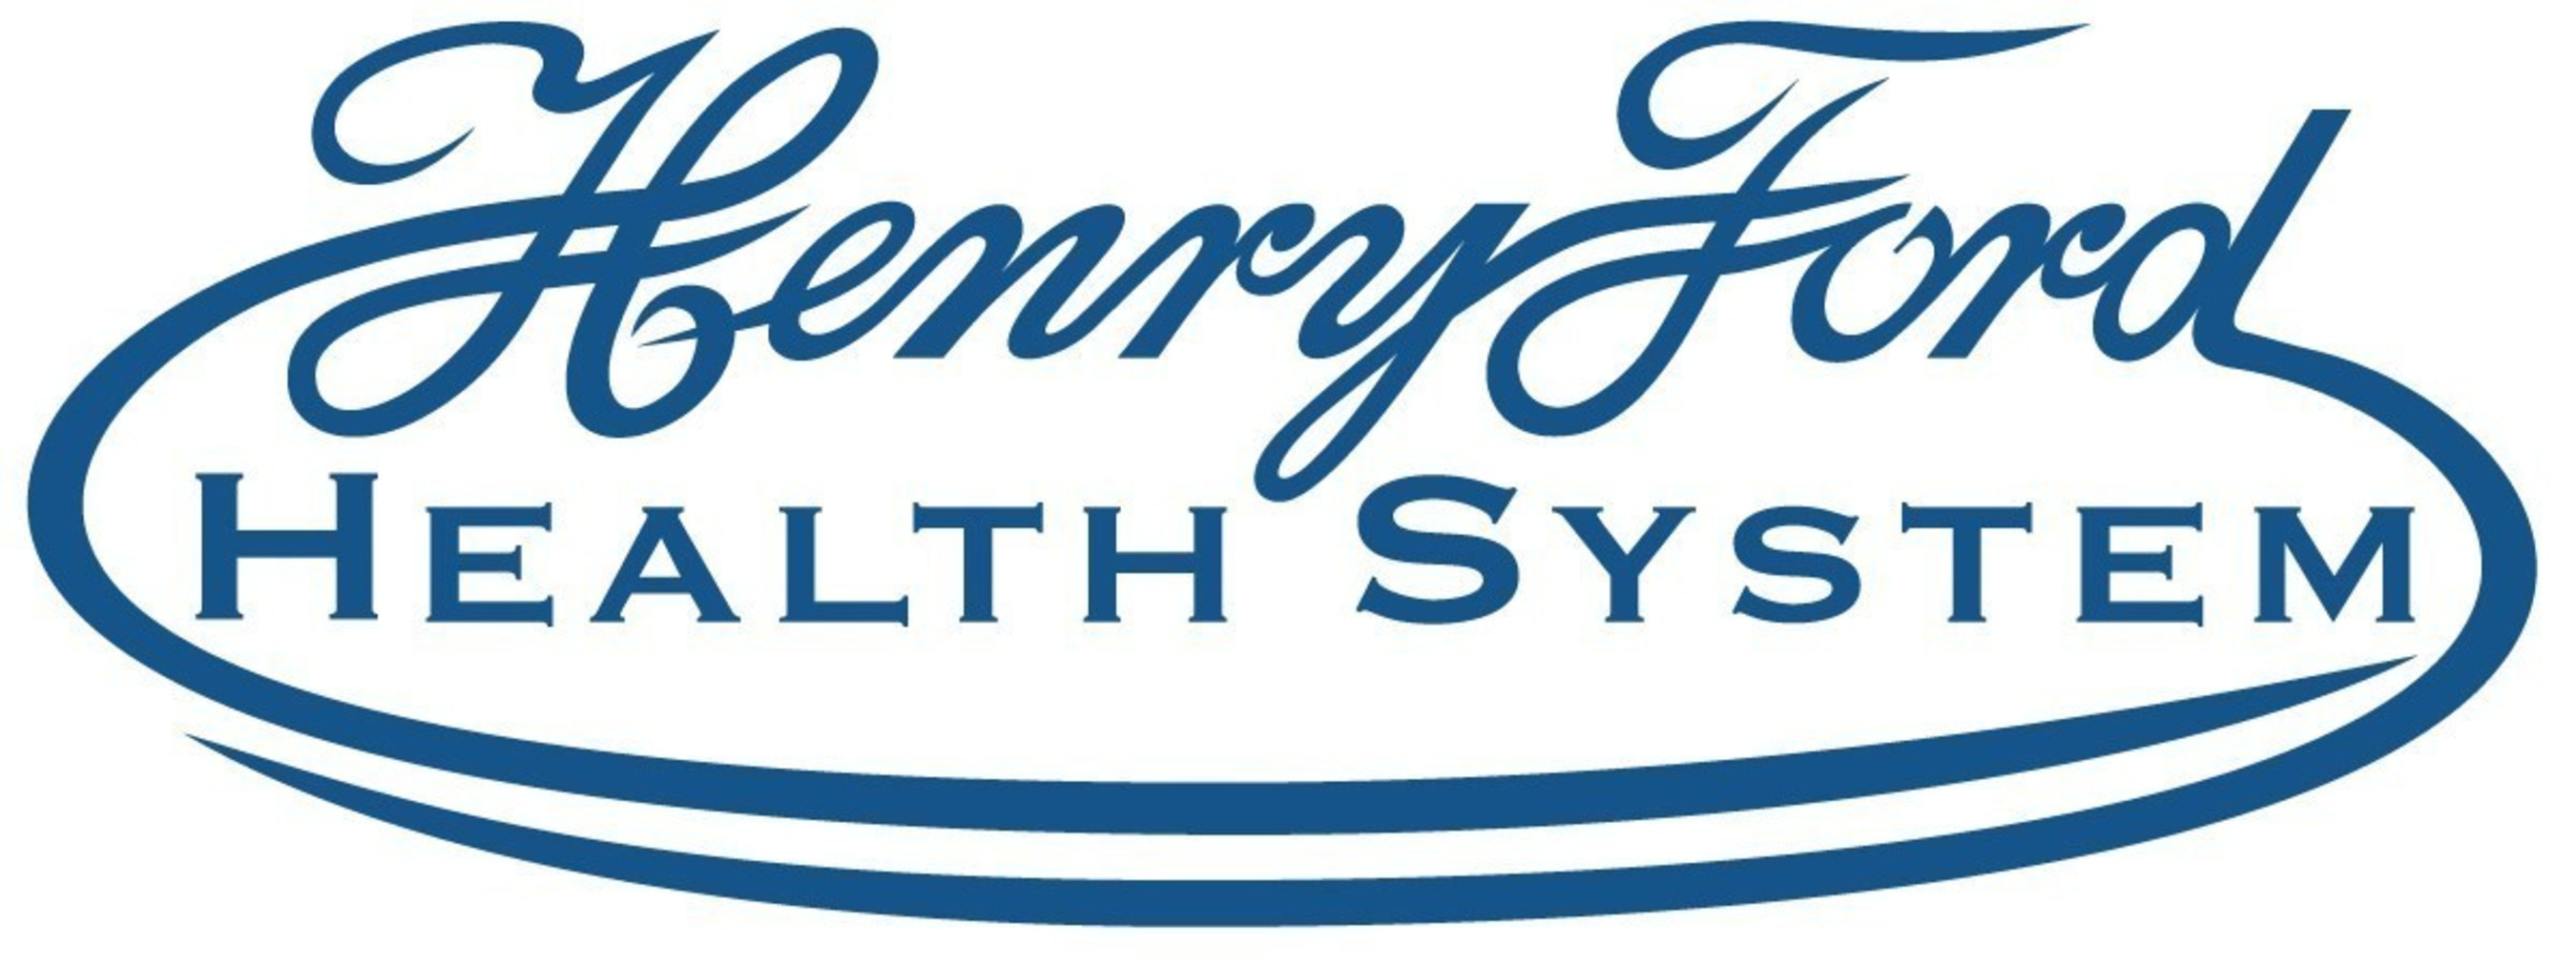 Henry Ford Hospital Campus Map.Henry Ford Health System Licenses Healthcare Technology To New